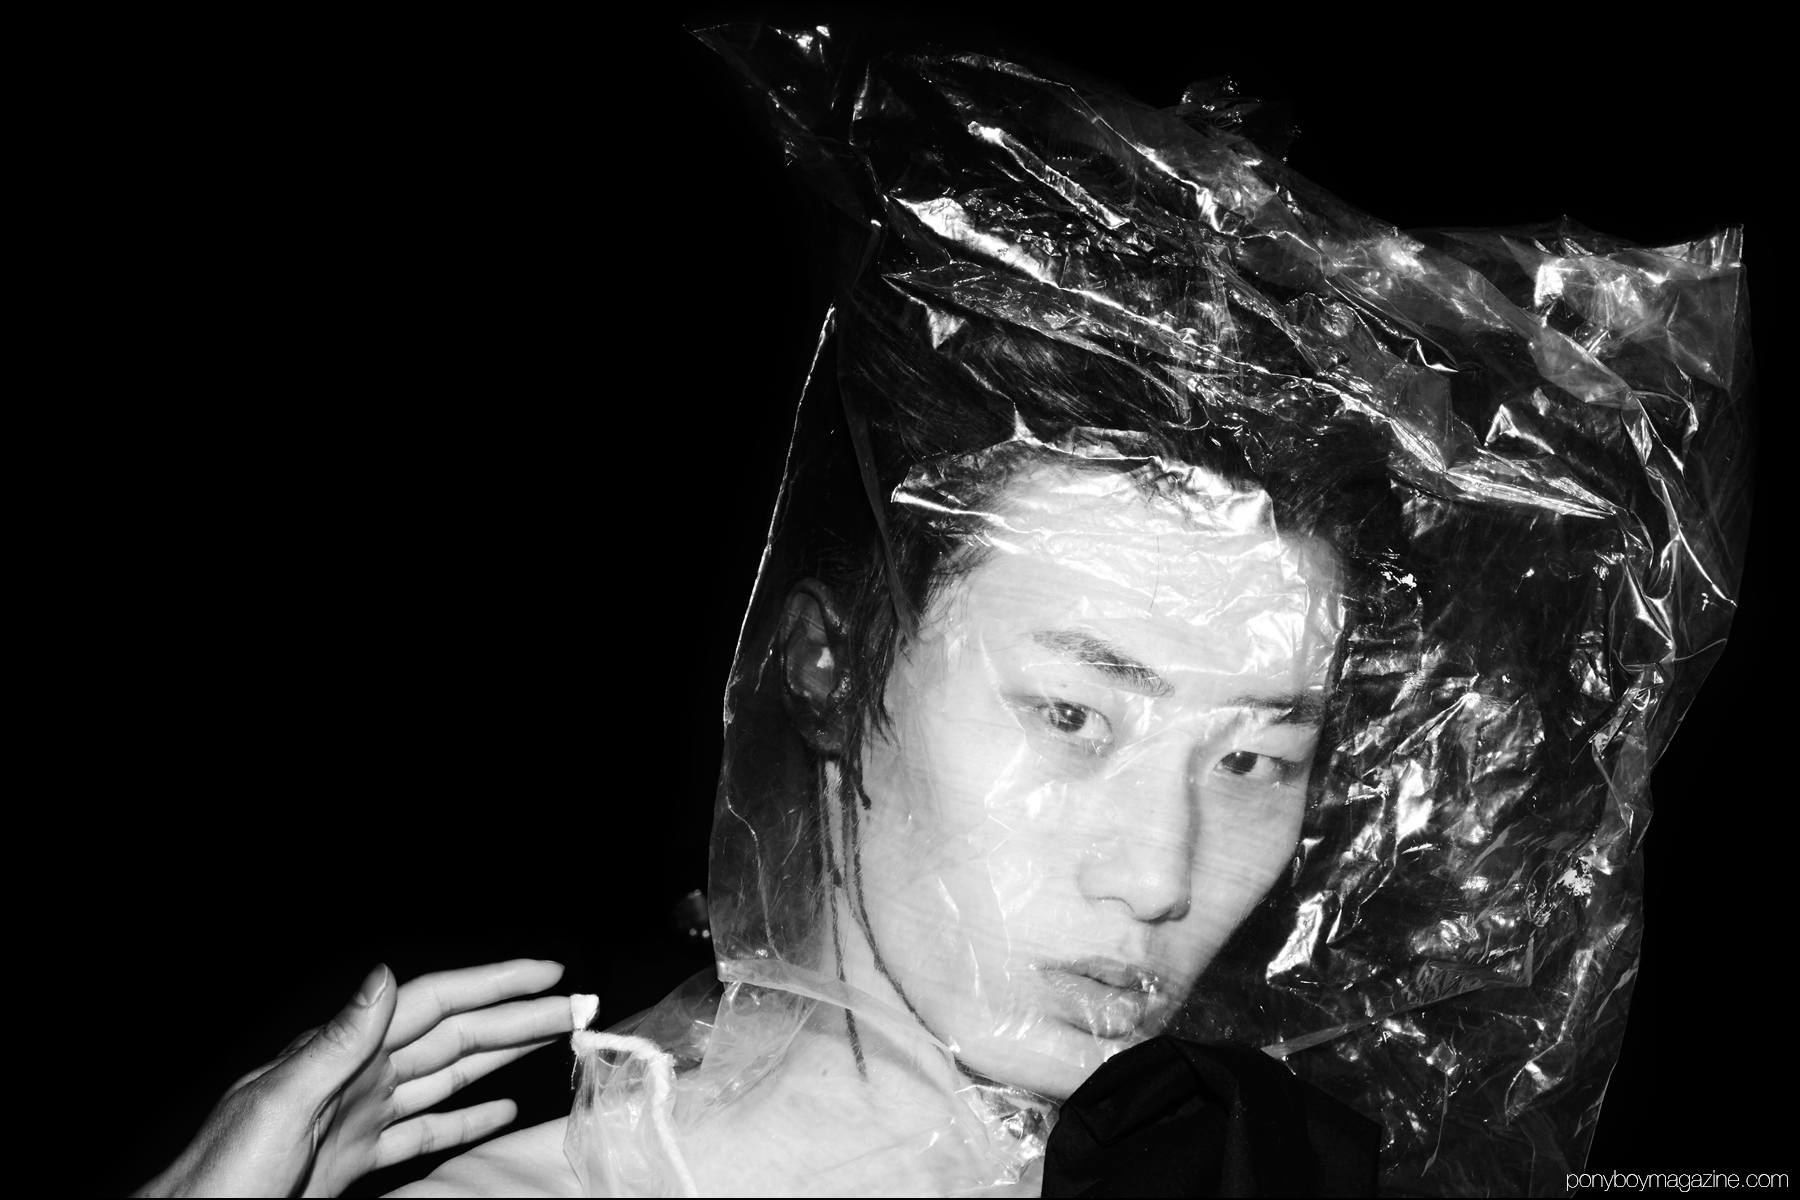 A male model photographed backstage with a plastic bag over his head, at the Siki Im + Den Im F/W16 menswear show. Photography by Alexander Thompson for Ponyboy magazine NY.